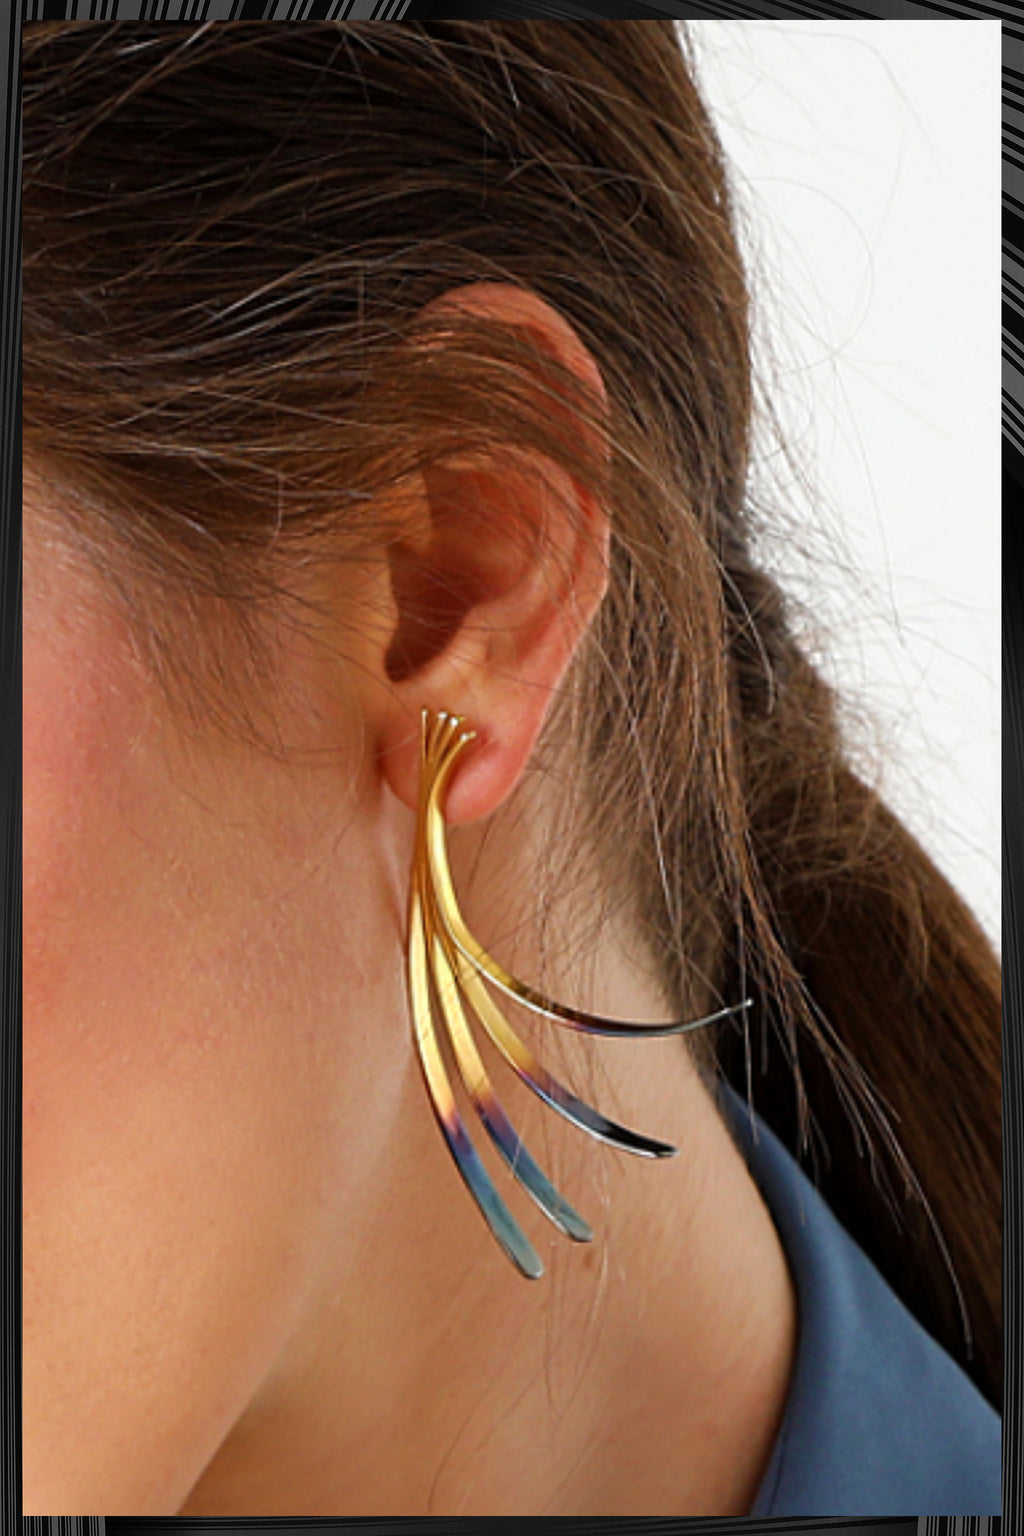 Shooting Star Earrings | Free Delivery - 2-3 Weeks Shipping